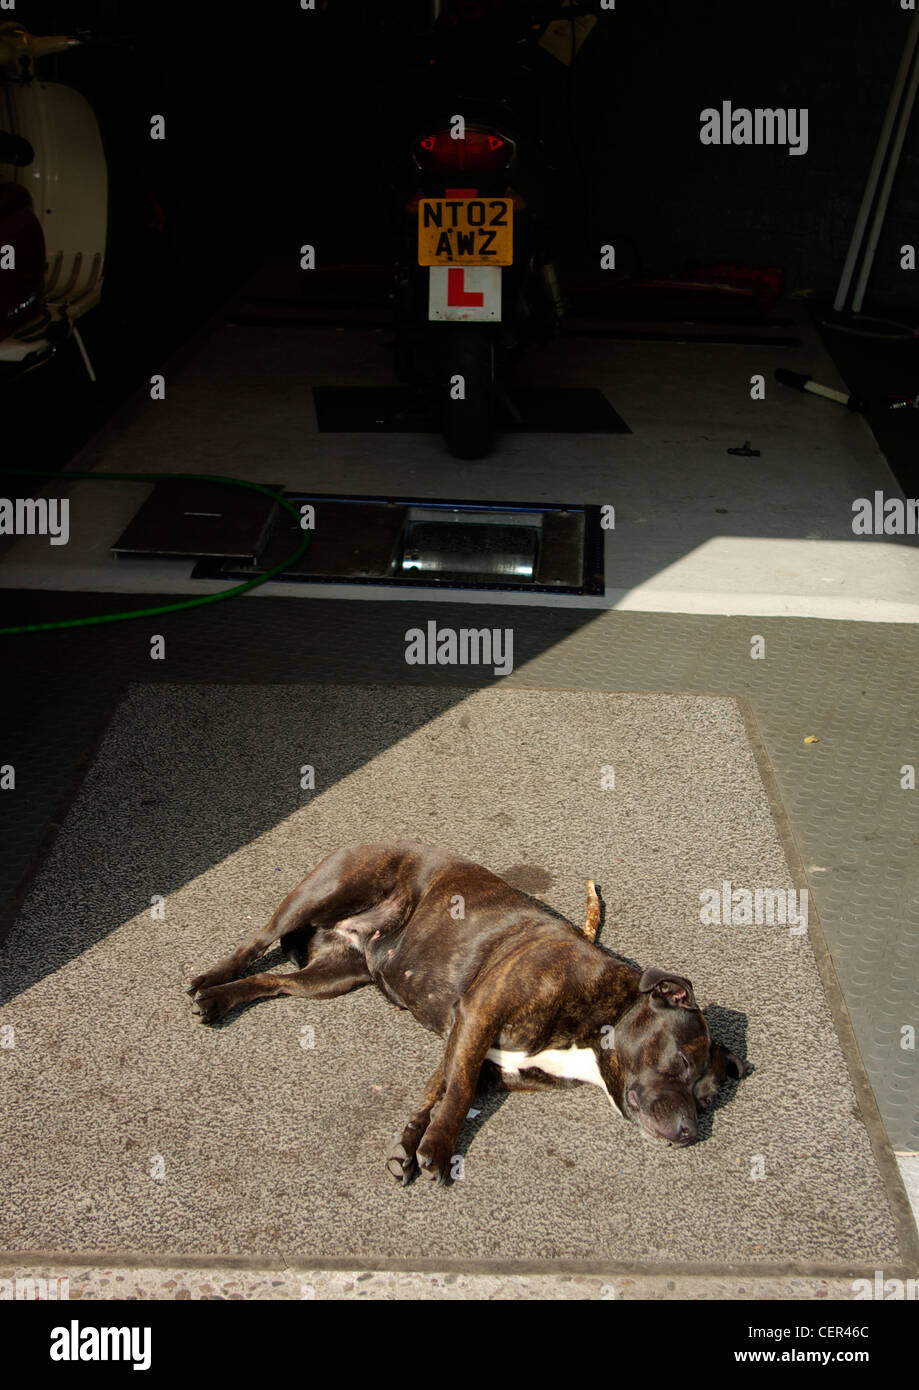 A dog sleeping in the sun at the entrance of a motor scooter garage. - Stock Image